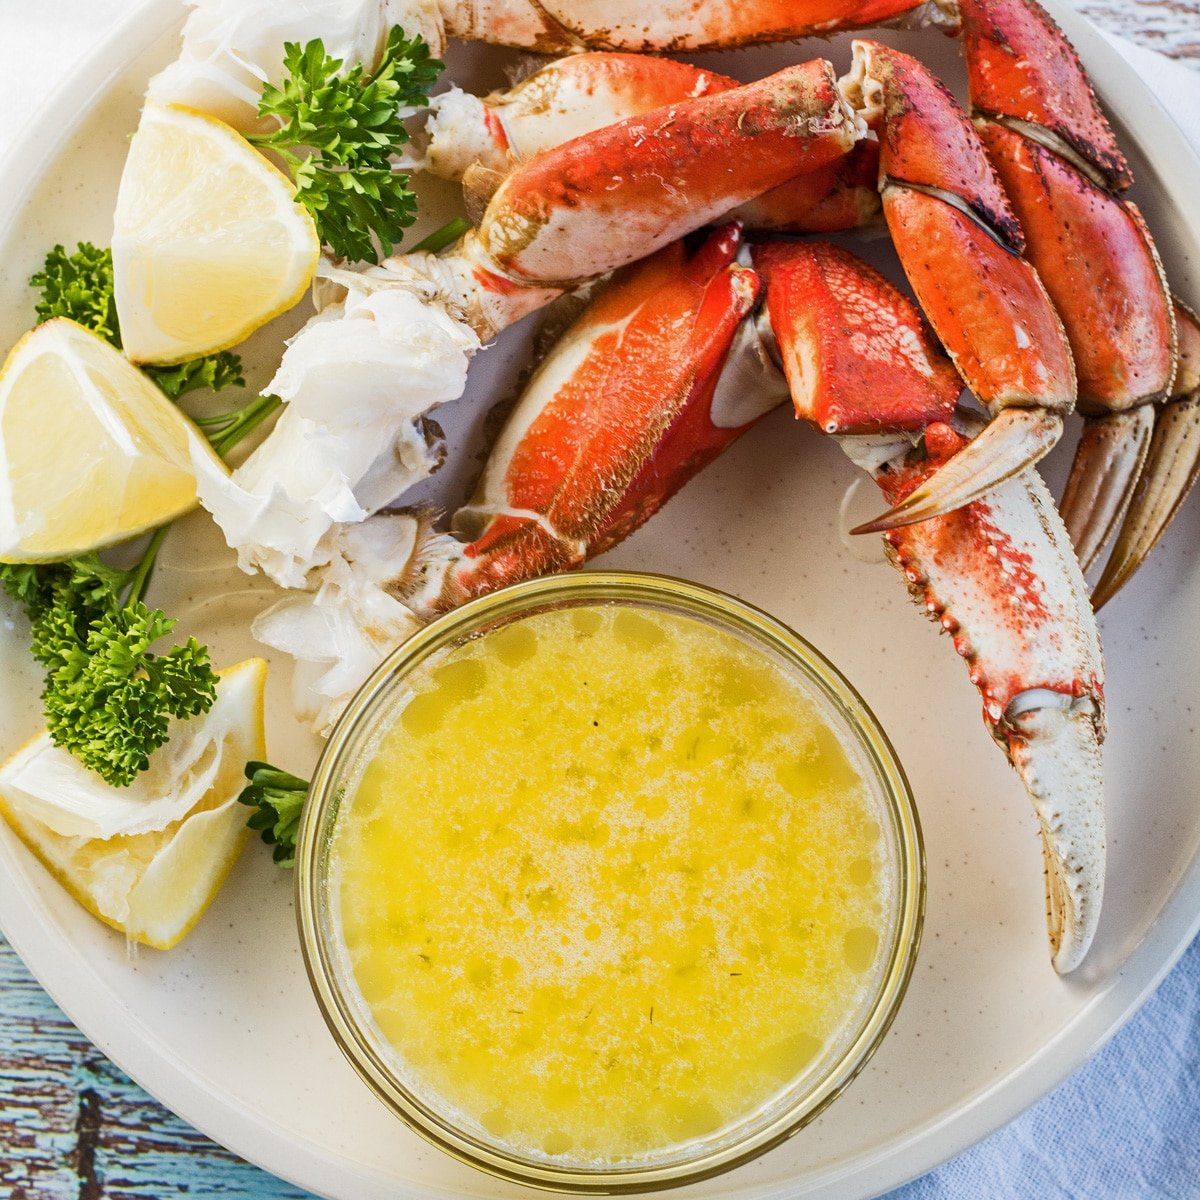 Drawn butter in clear bowl served on white plate with crab legs and lemon wedges.